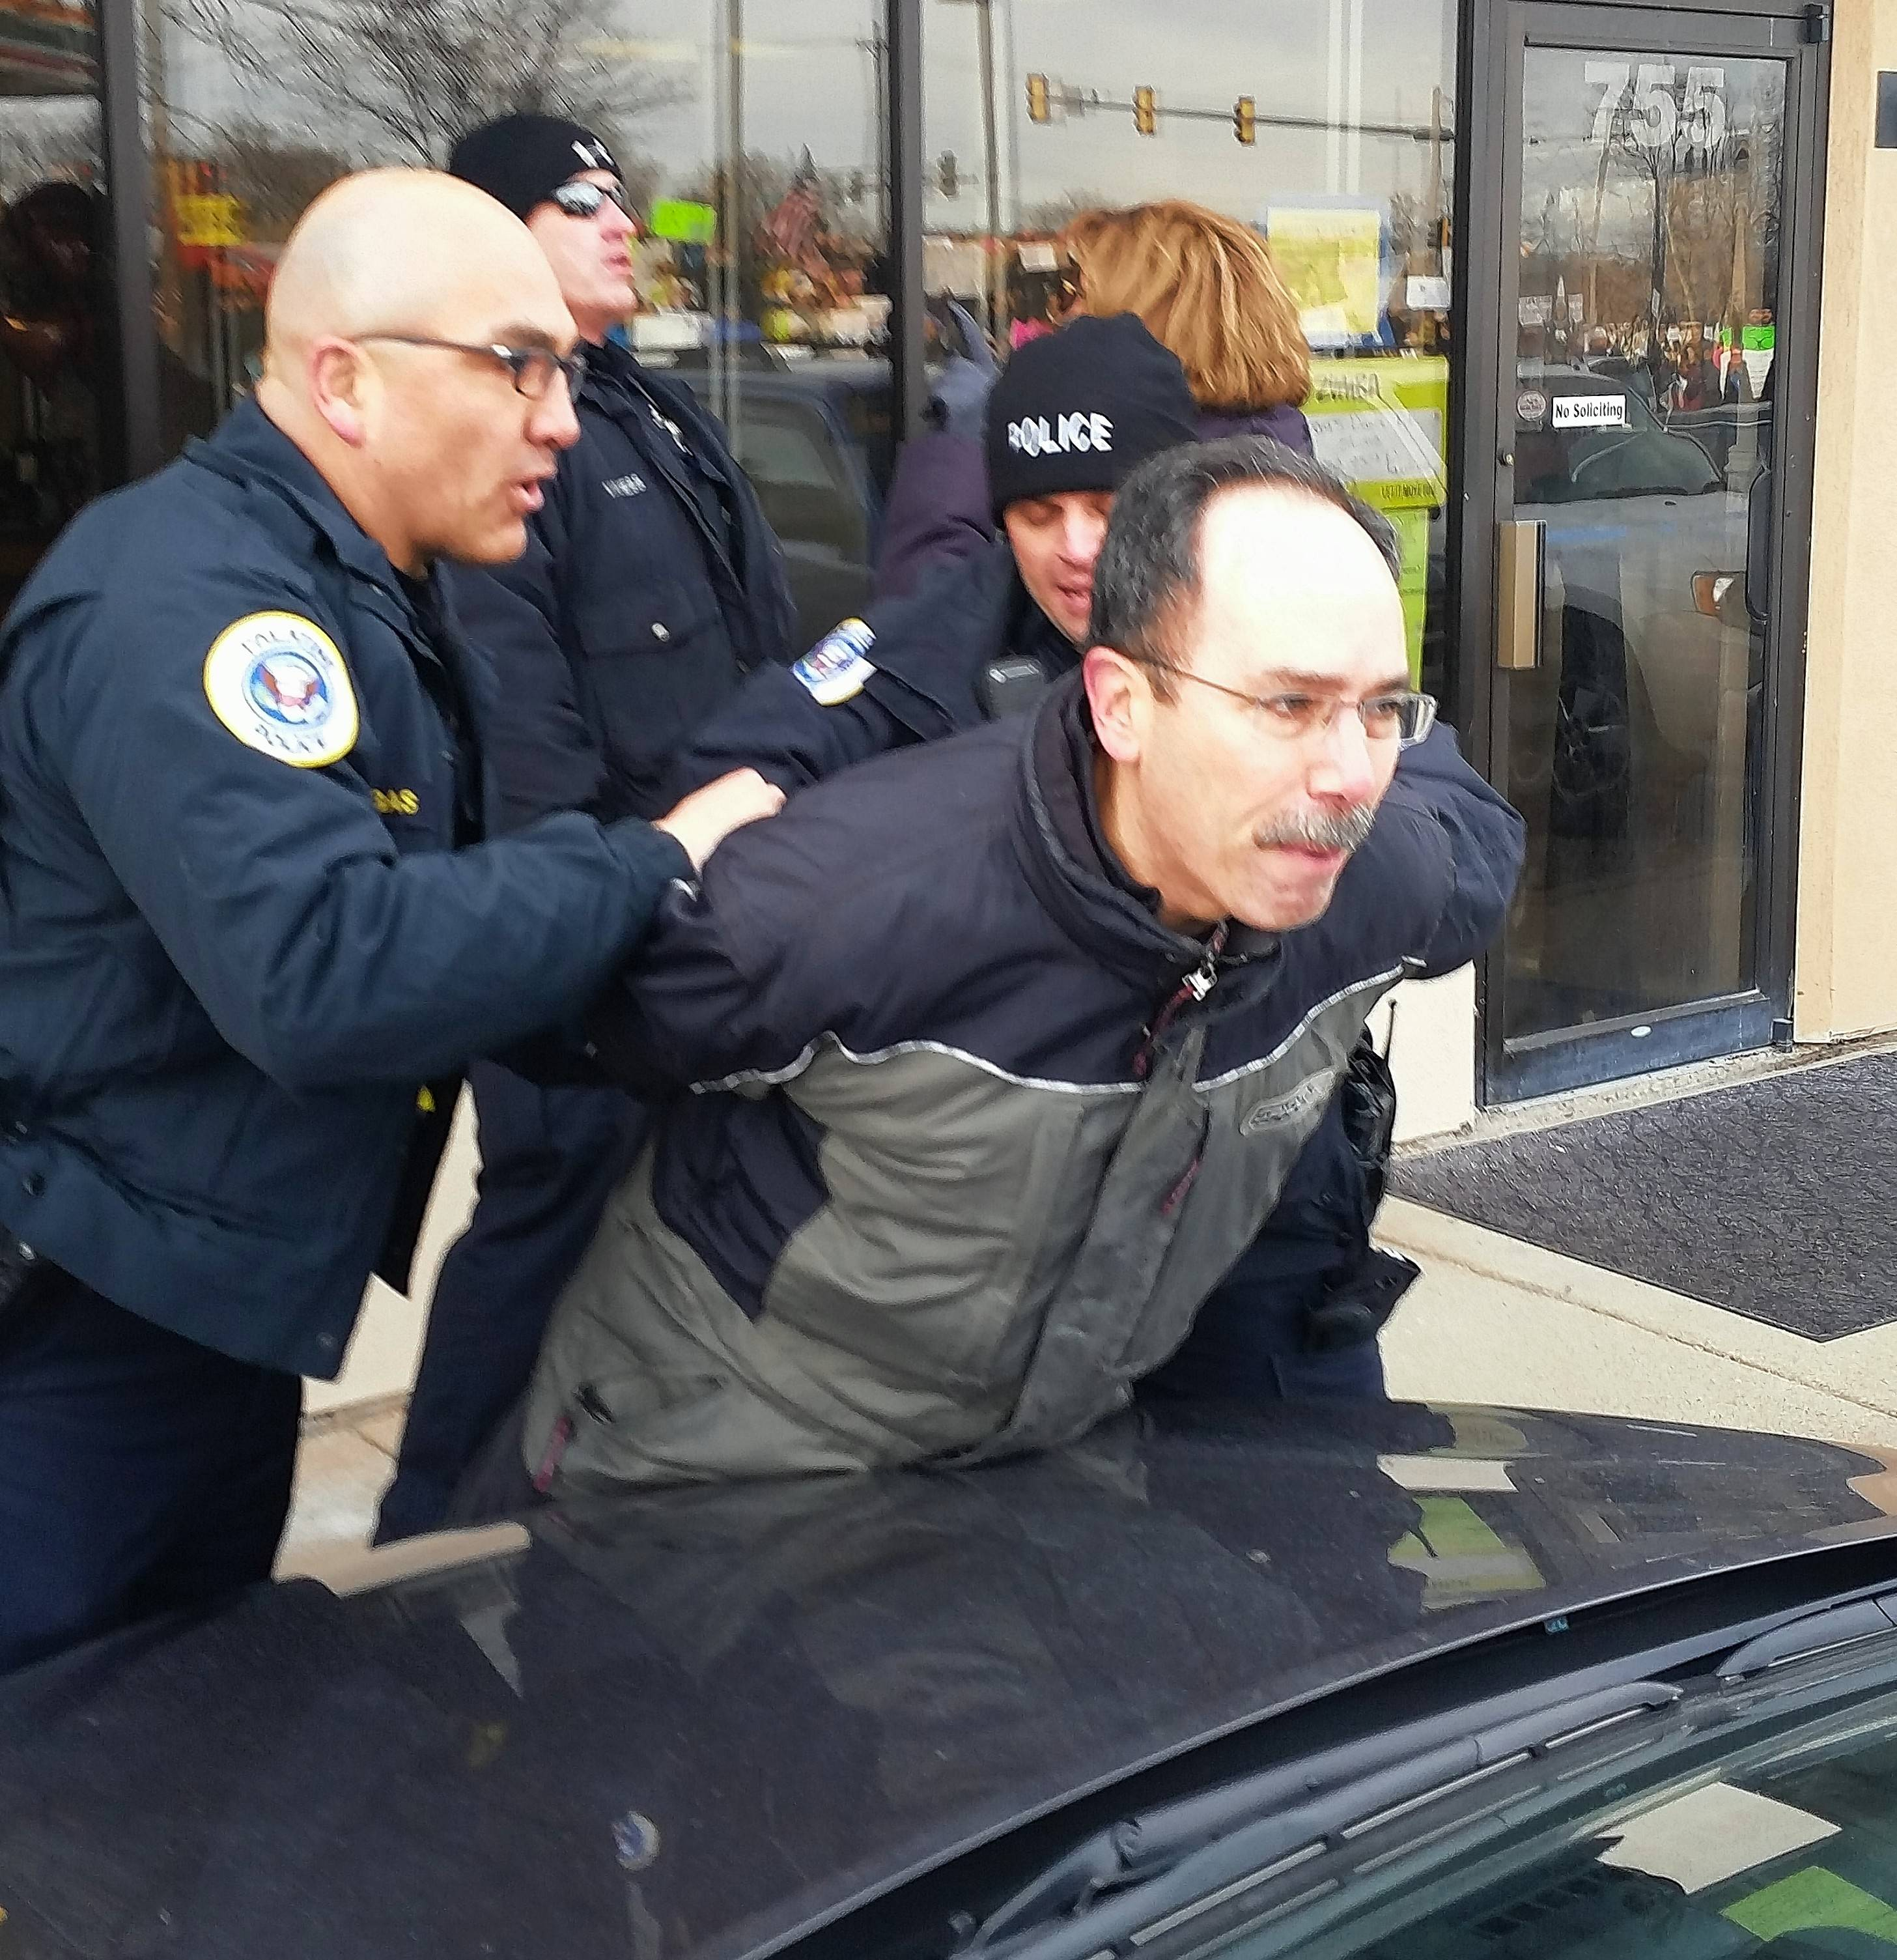 Palatine police arrest a protester Saturday outside the Palatine Township Republican Organization office in Palatine while U.S. Rep. Peter Roskam was inside the office talking to organization members.